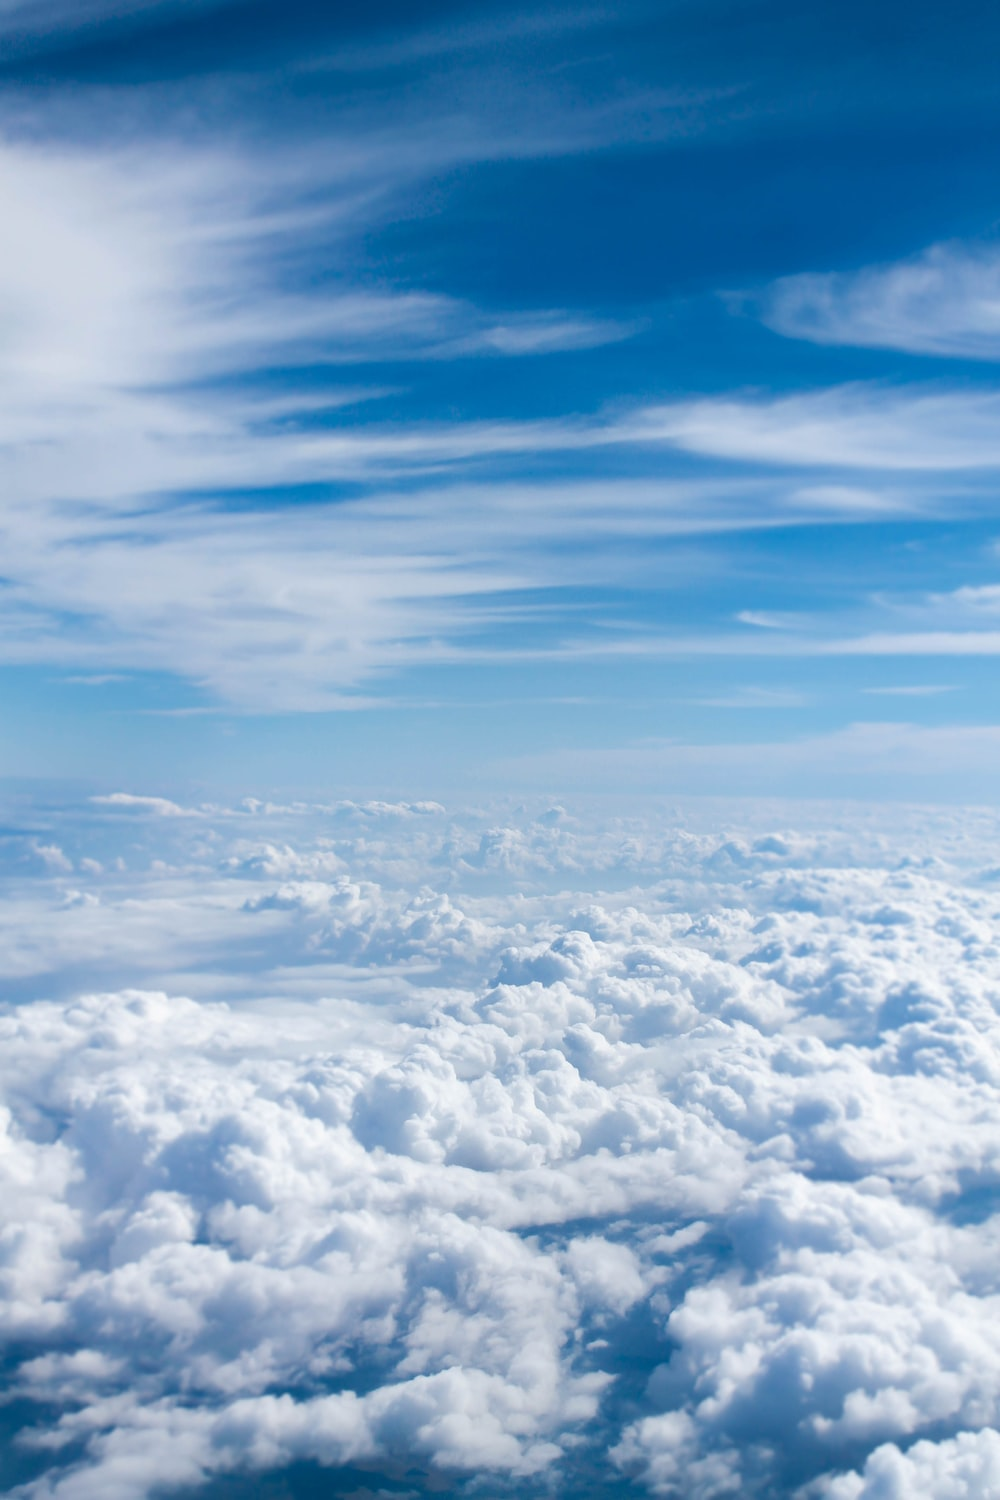 above-cloud photo of blue skies